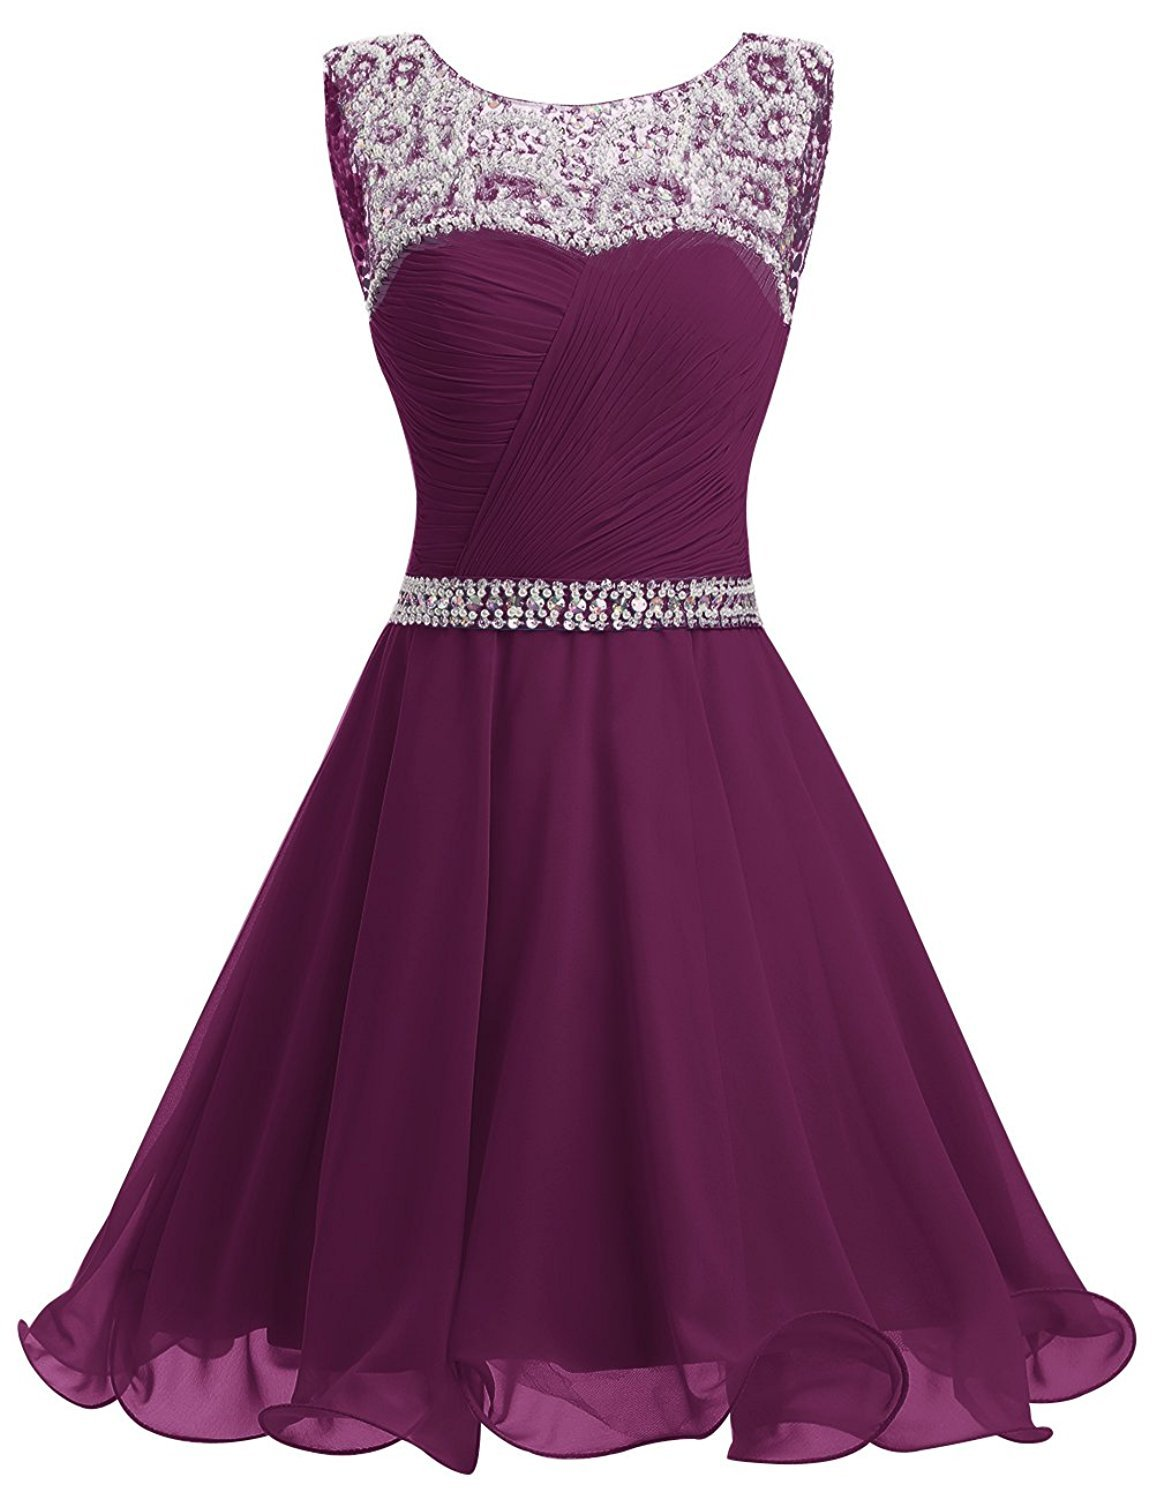 Primary image for Short Grape Homecoming Dresses Ruched Chiffon Prom Gown Party Dress with Beads